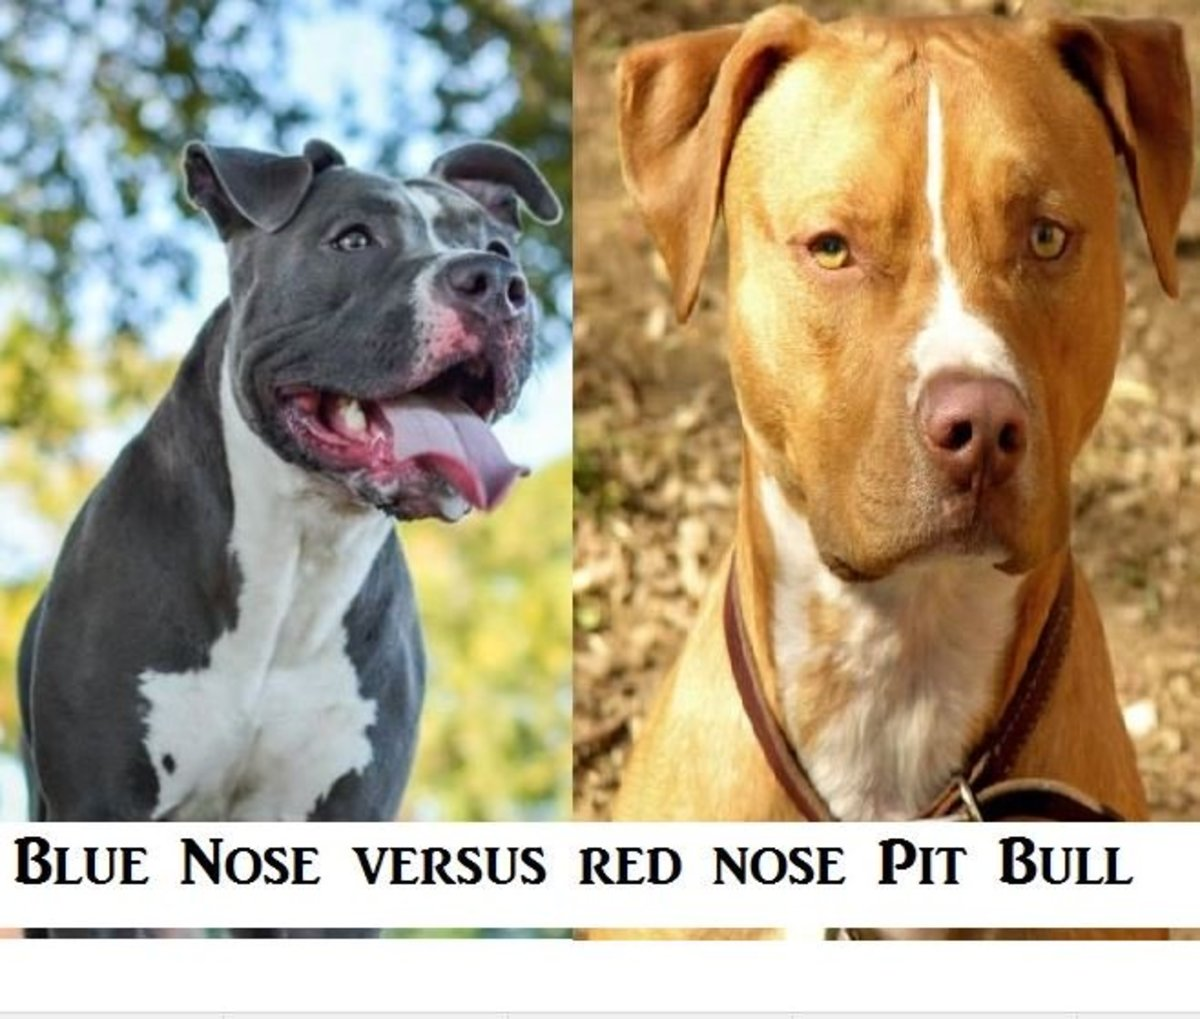 Facts About Blue Nose Pit bulls and Red Nose Pit Bulls